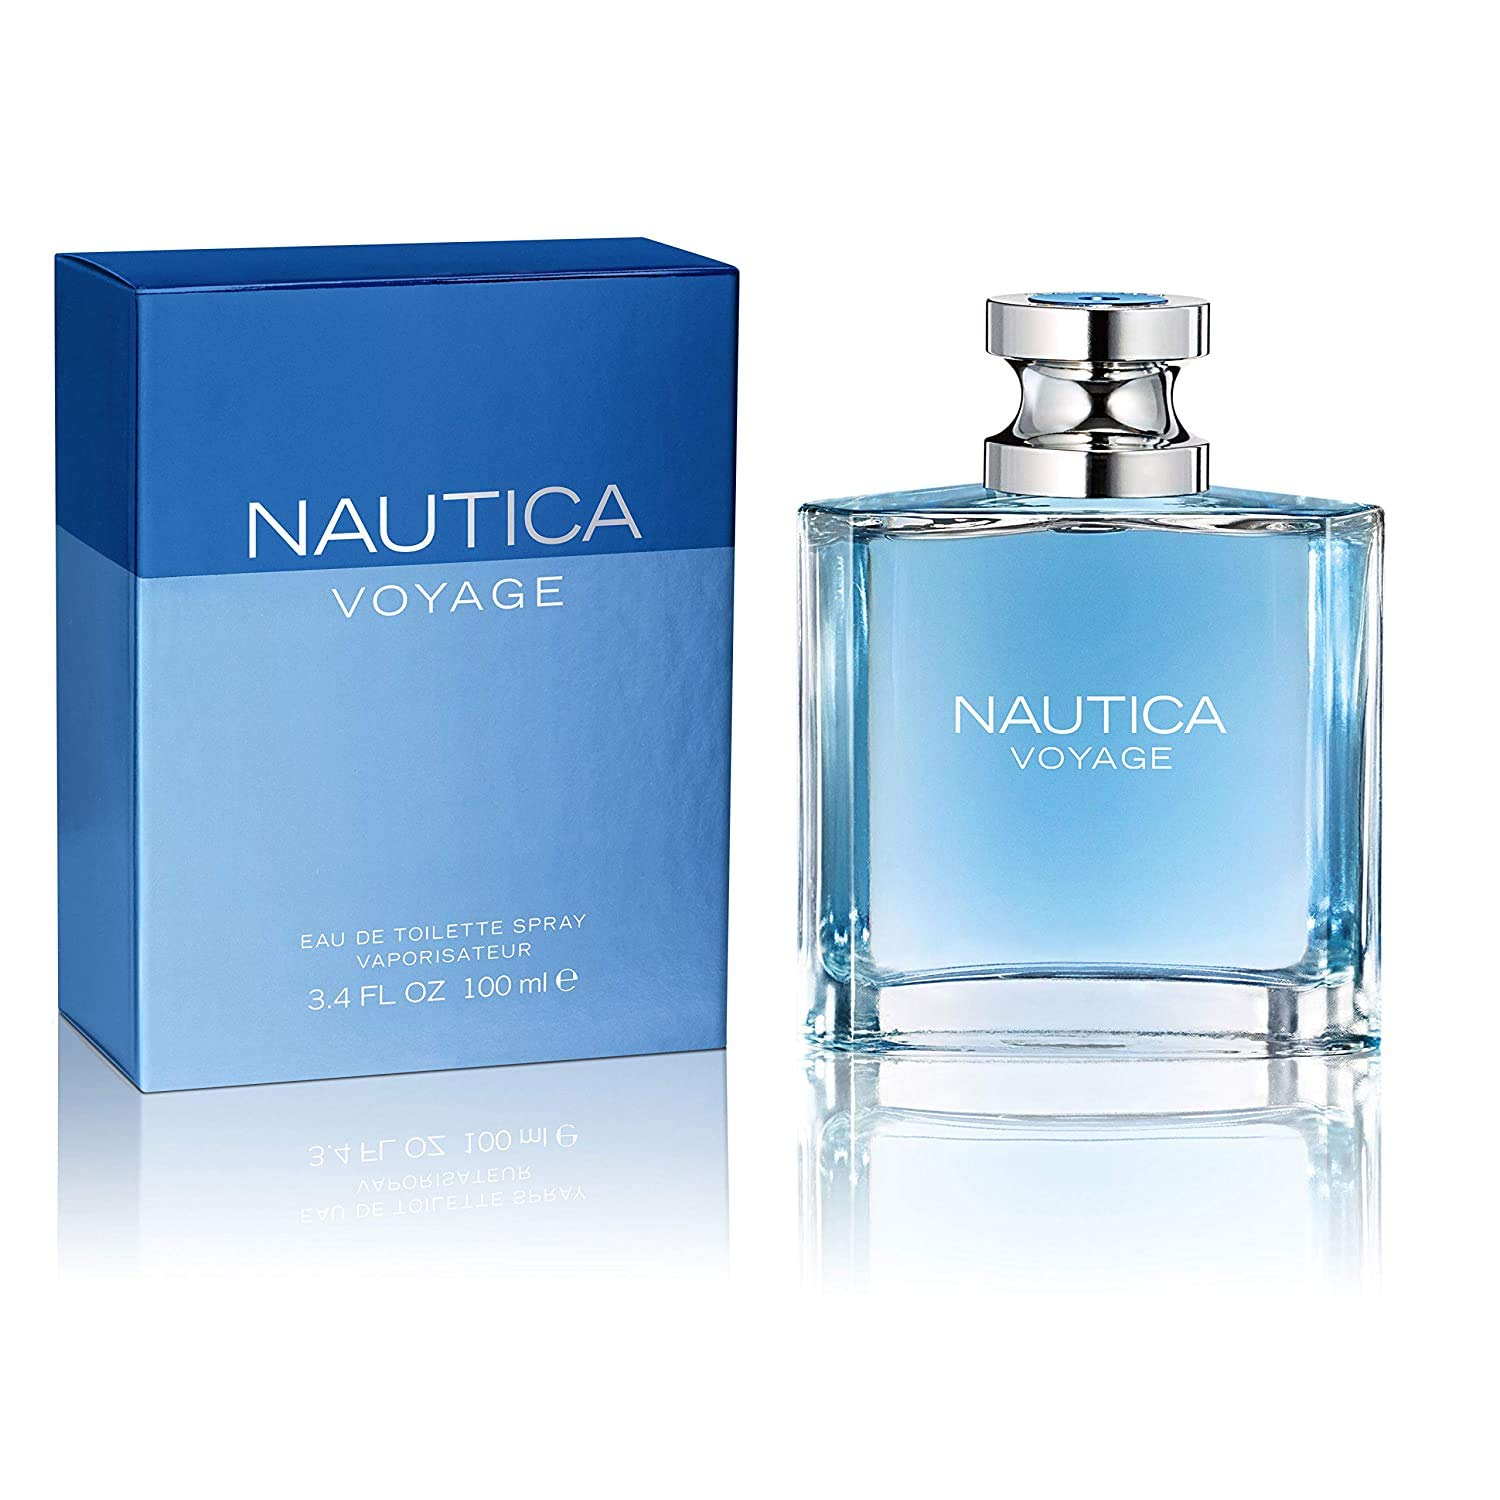 Nautica Voyage Eau de Toilette - Top 10 Perfumes For Men In India